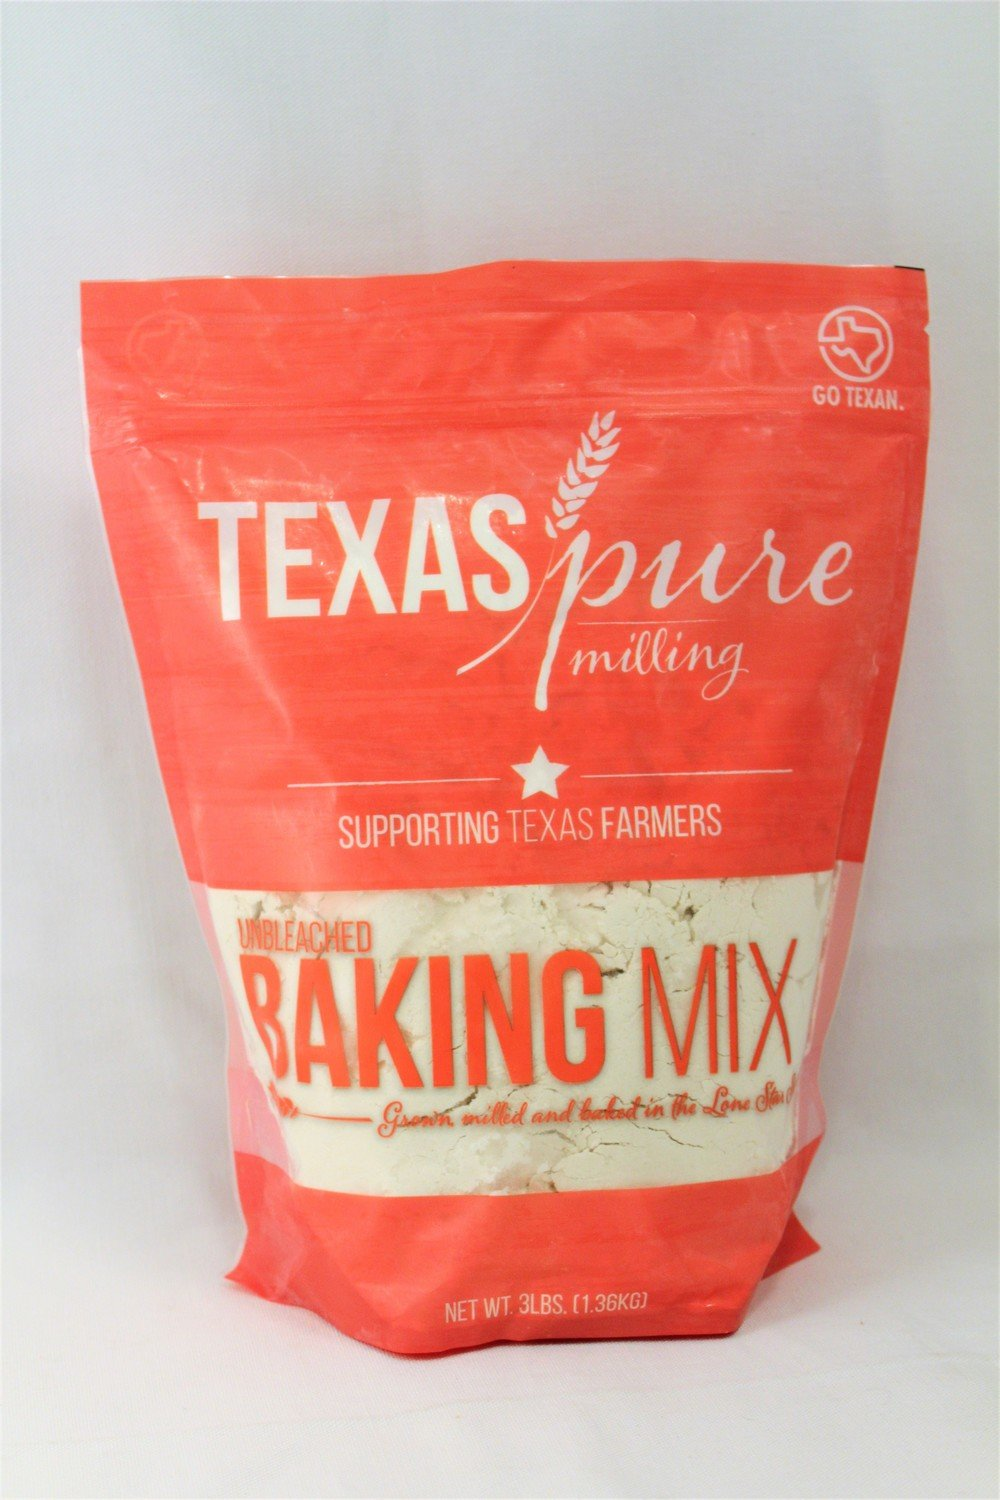 Texas Pure Milling Unbleached Baking Mix